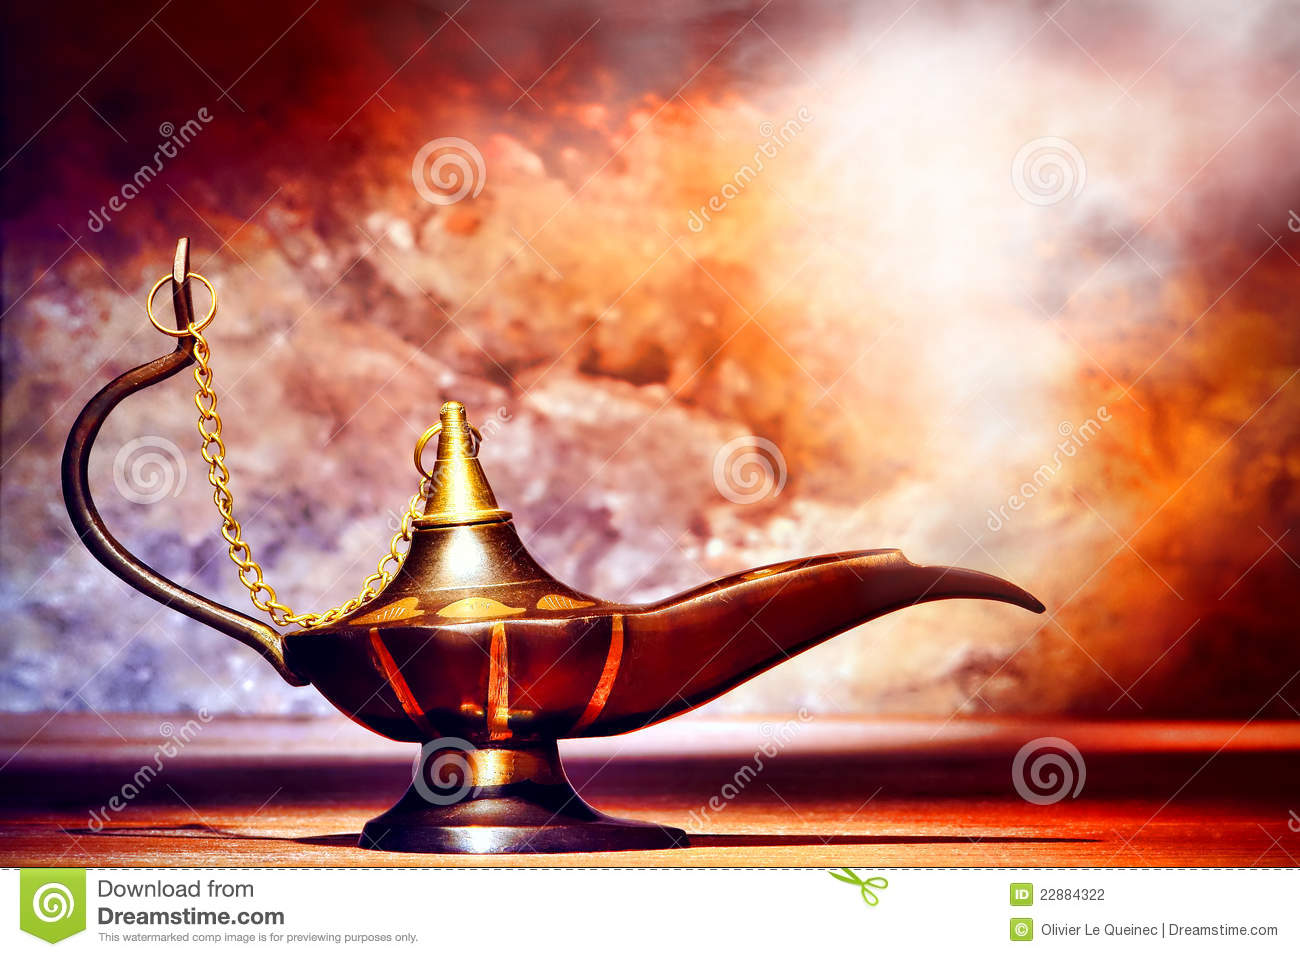 Brass and Copper Aladdin Style Oil Lamp with Smoke